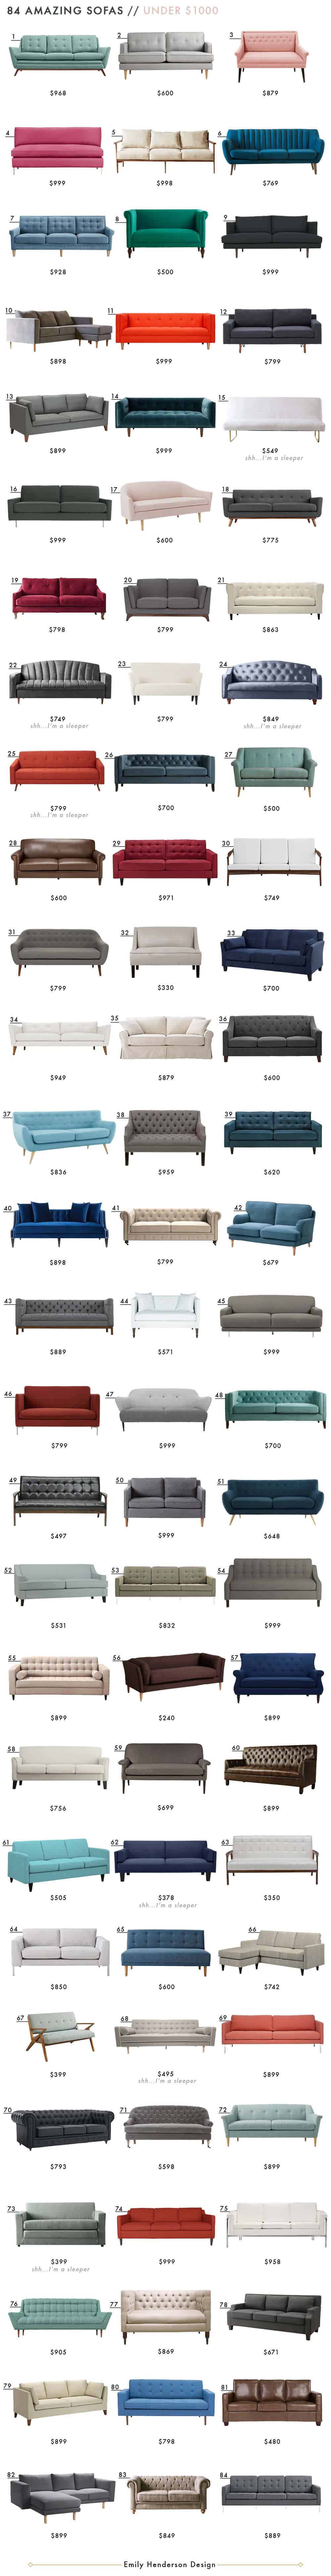 Chic and Cheap Sofas Under $1000 affordable Emily Henderson budget roundup